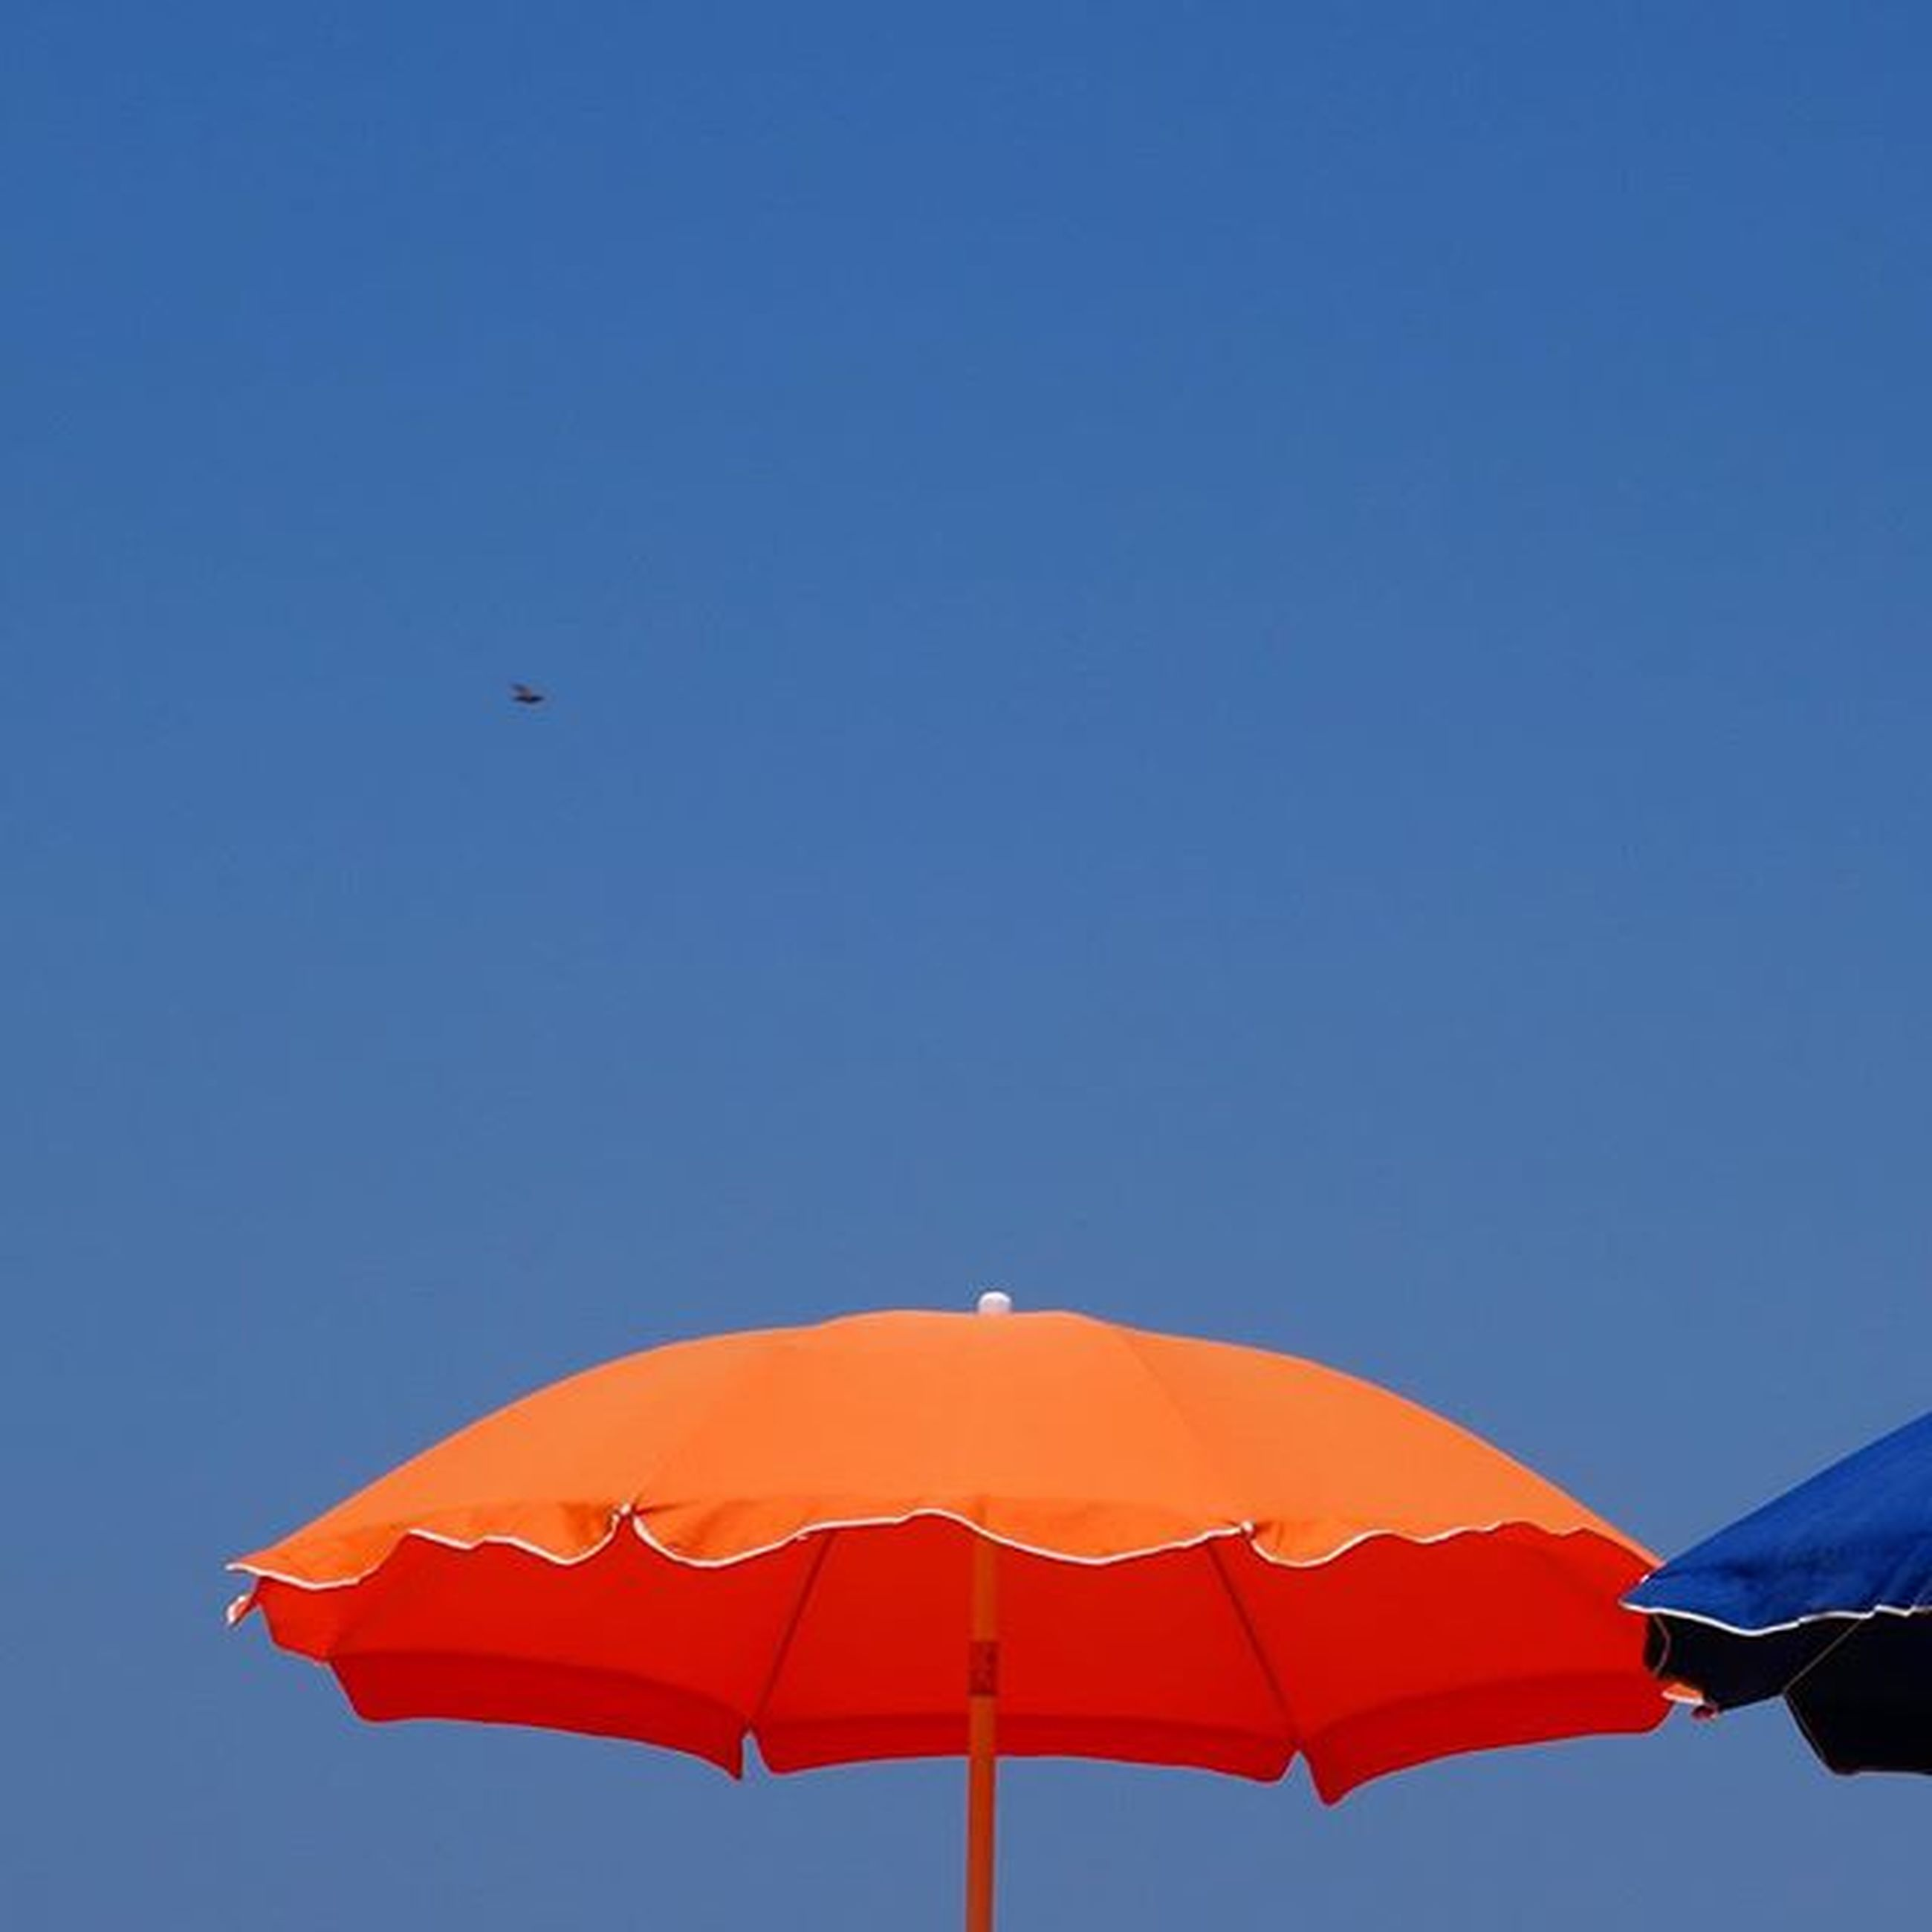 clear sky, low angle view, copy space, blue, flying, red, mid-air, multi colored, outdoors, flag, day, no people, sky, patriotism, bird, identity, freedom, wind, sunshade, orange color